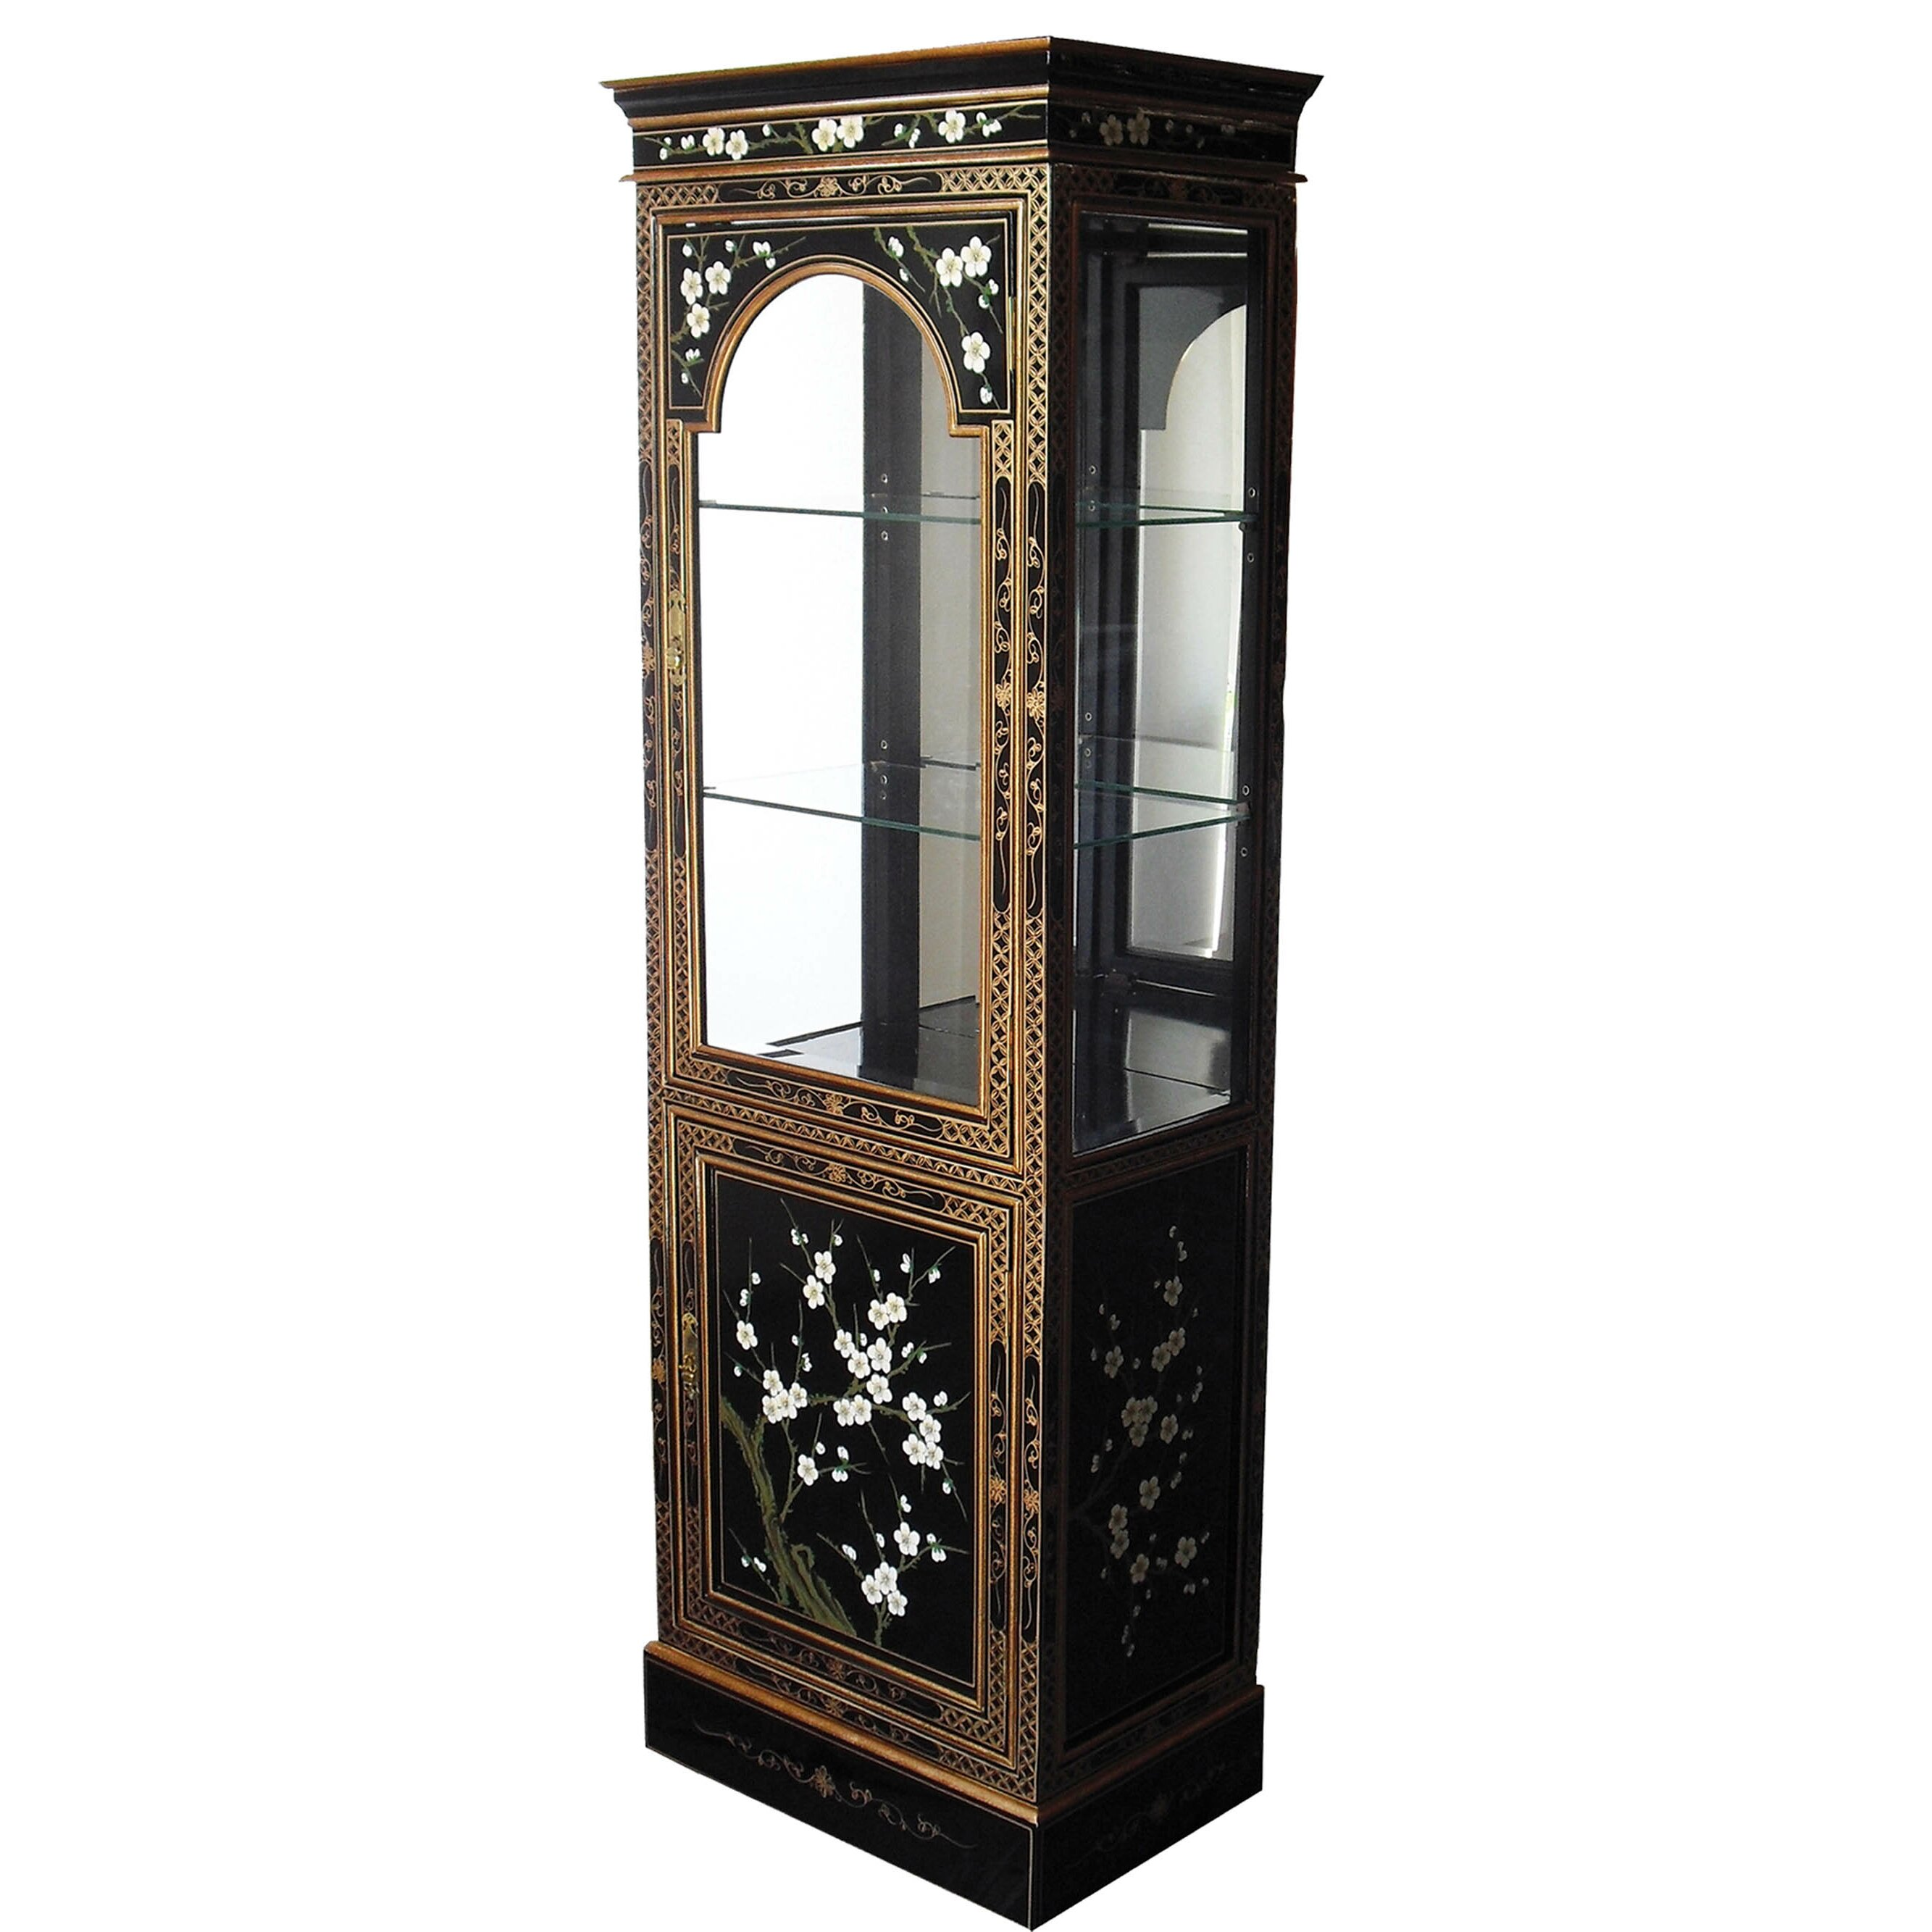 Grand international decor display cabinet for Grand international decor